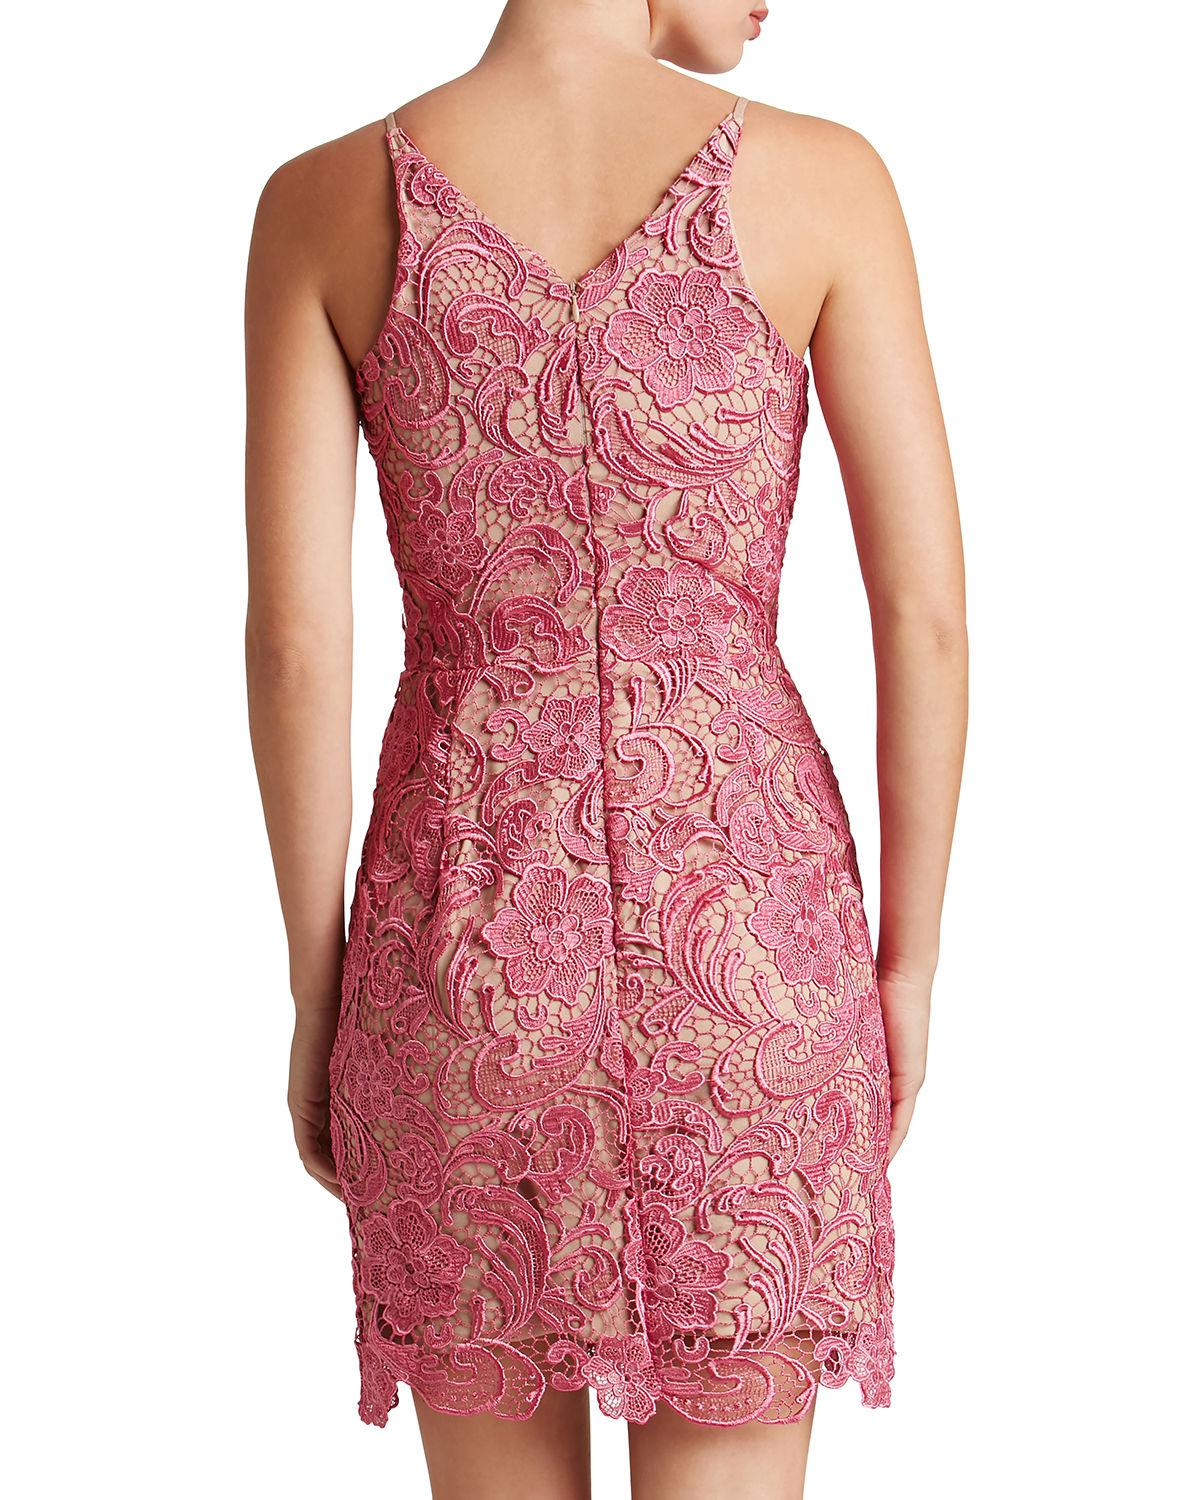 fd7274c9618e Gallery. Previously sold at: Last Call · Women's Lace Dresses Women's  Crochet ...